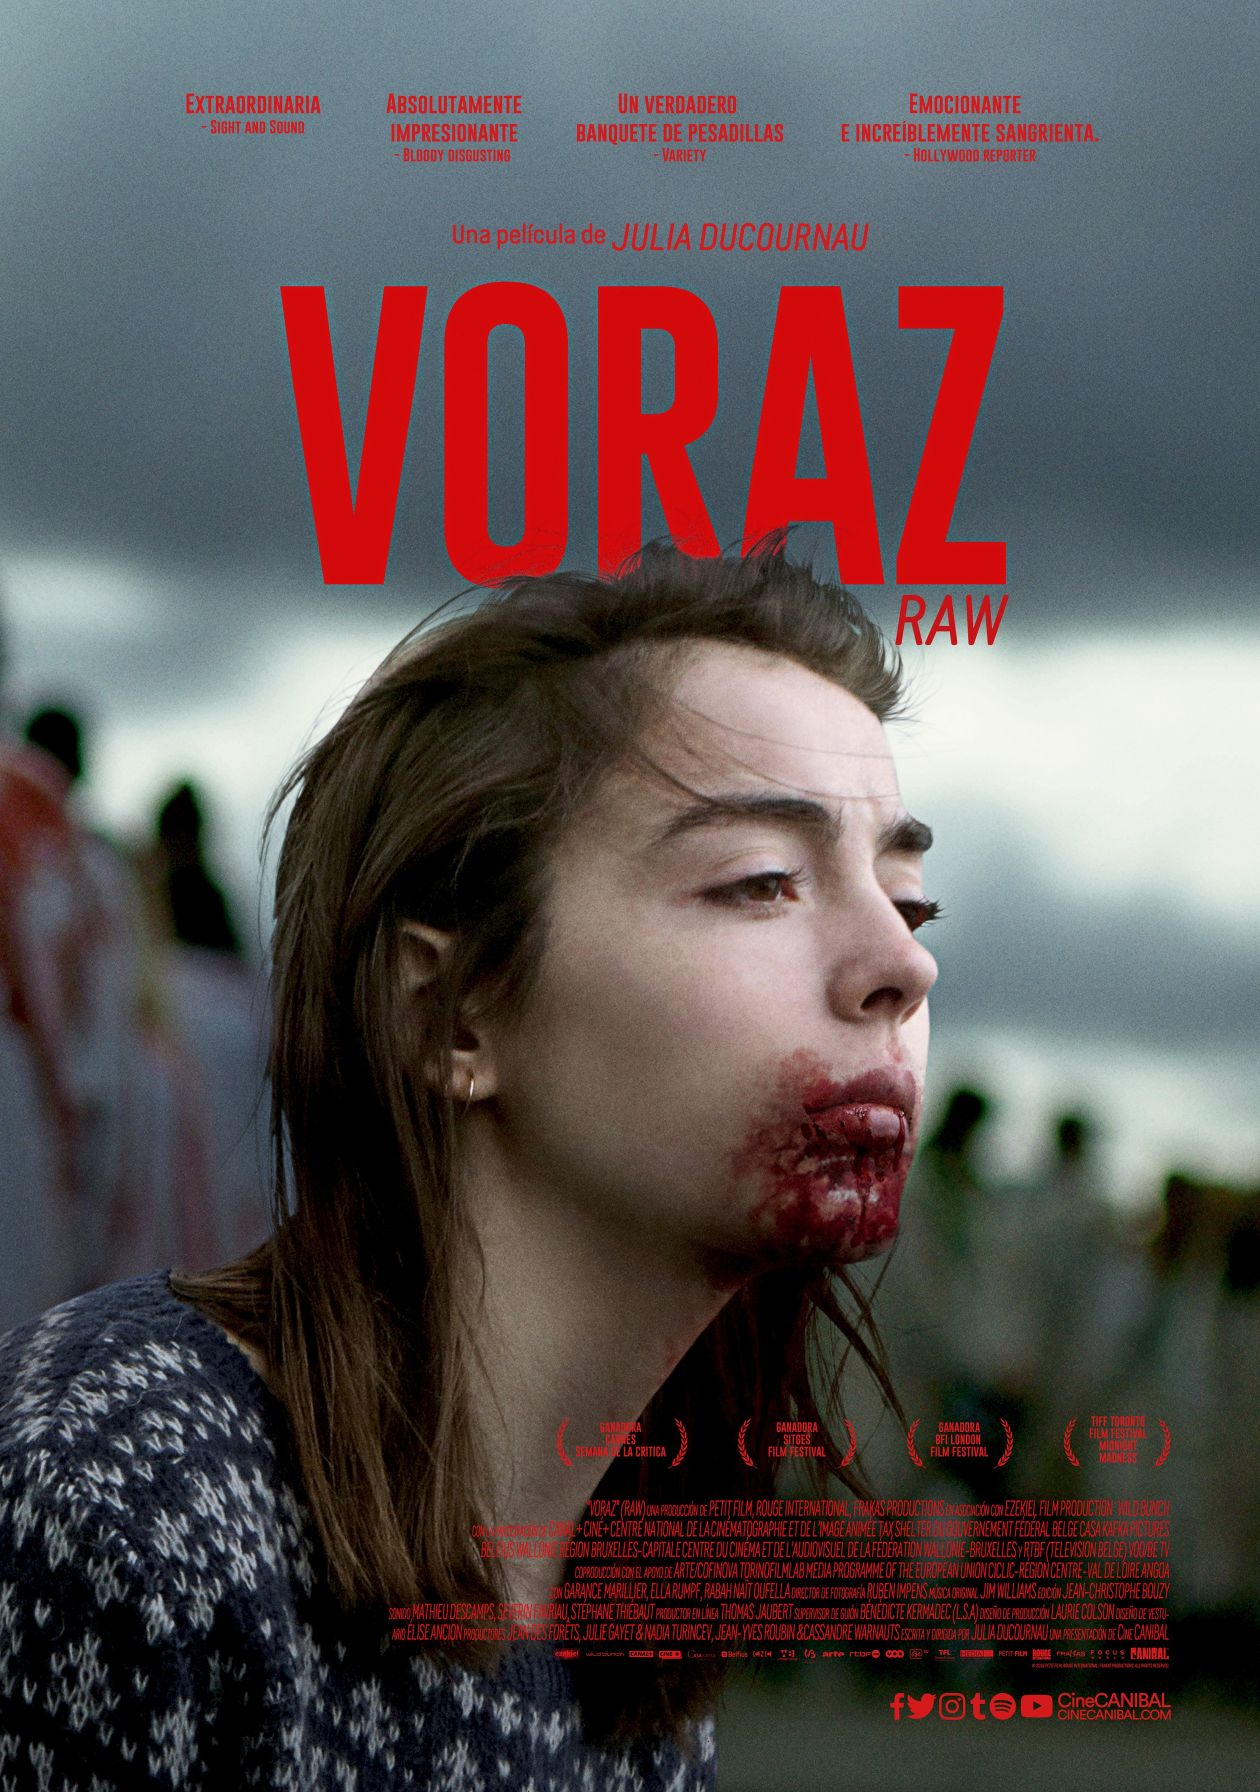 Garance Marillier French Actress actrice comédienne | Grave / Raw / Voraz / Julia Ducournau 2016 / Movie Poster / Affiche du film